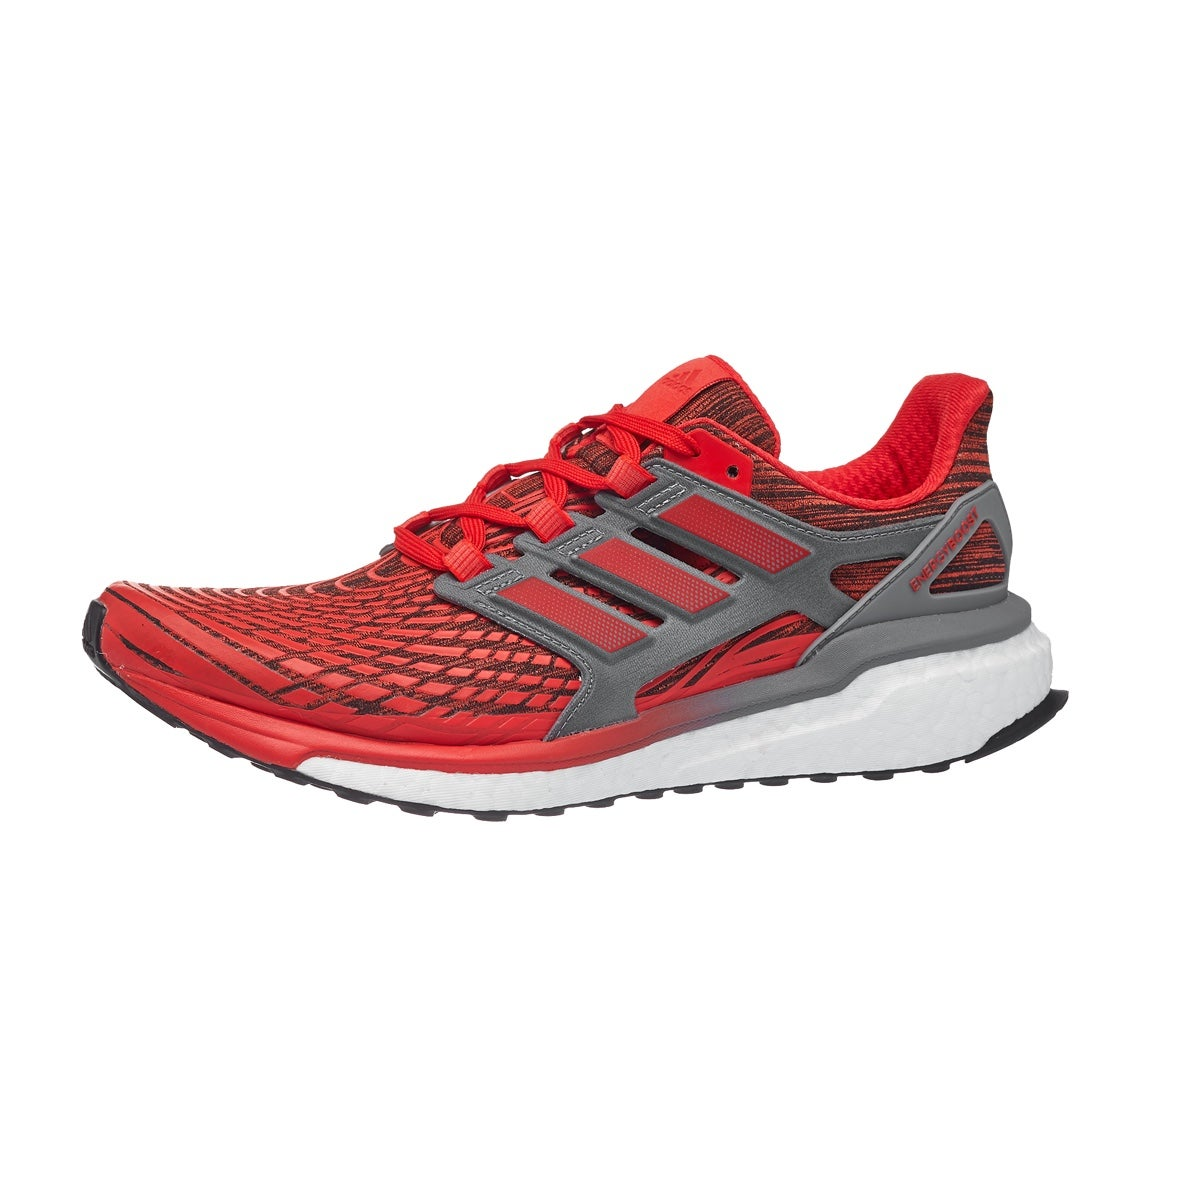 size 40 8e2e6 83a12 adidas Energy Boost 3 Mens Shoes Red 360° View  Running Warehouse Europe.